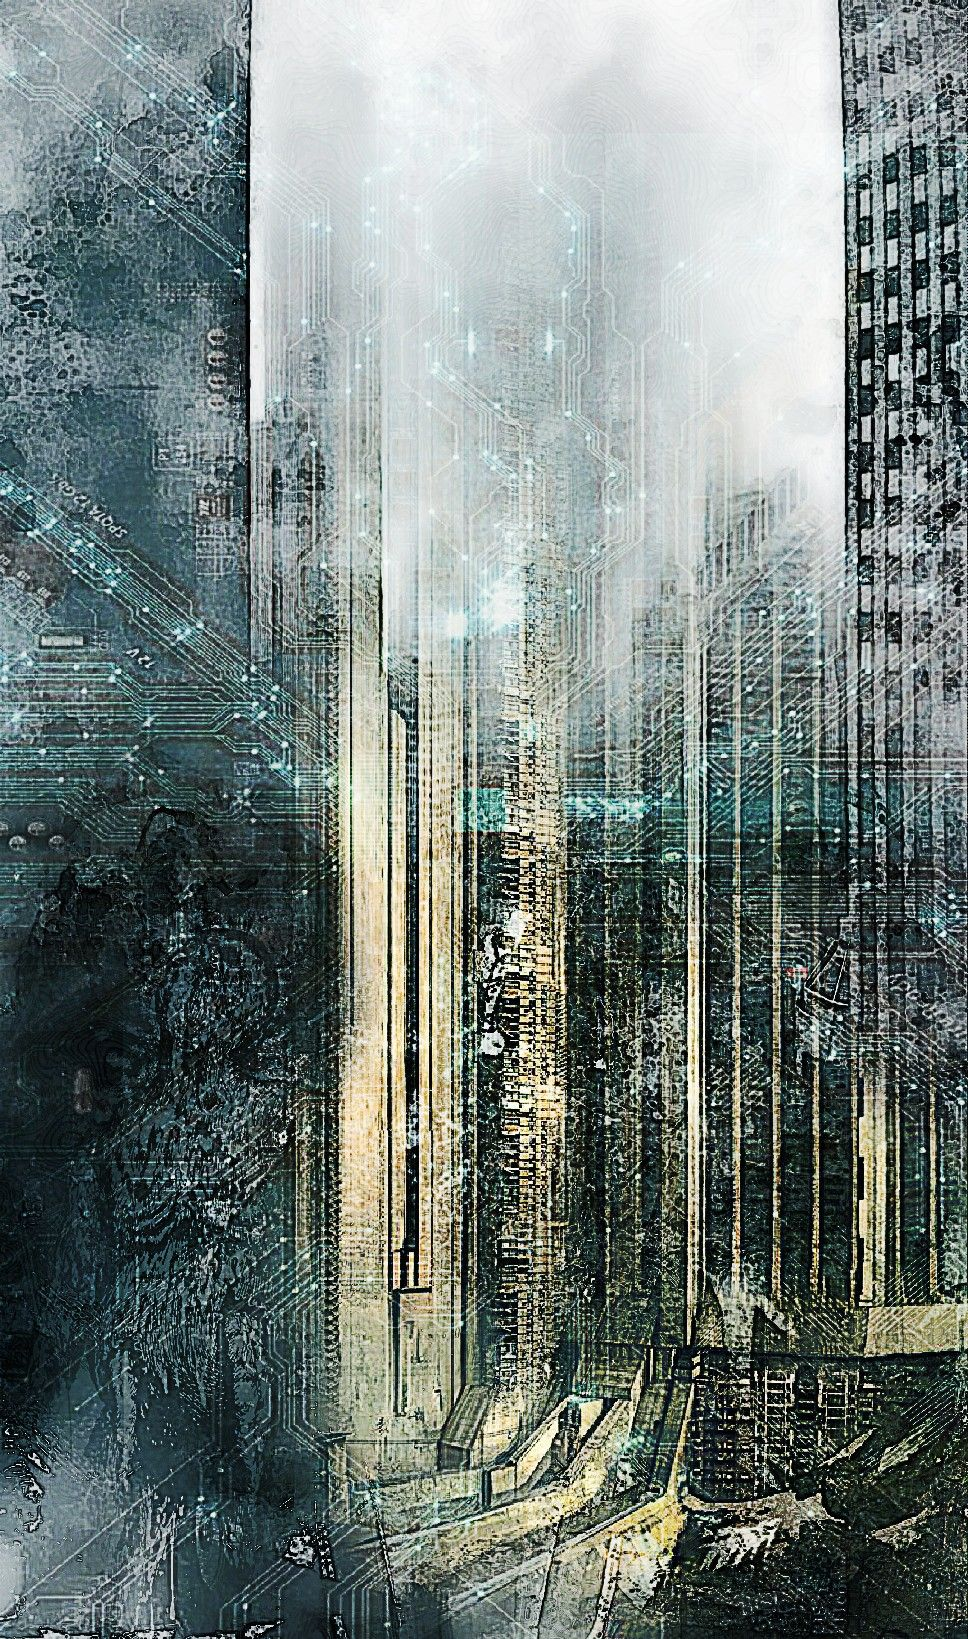 Background Dystopian City By Background Utopia Dystopia Abstract Artwork